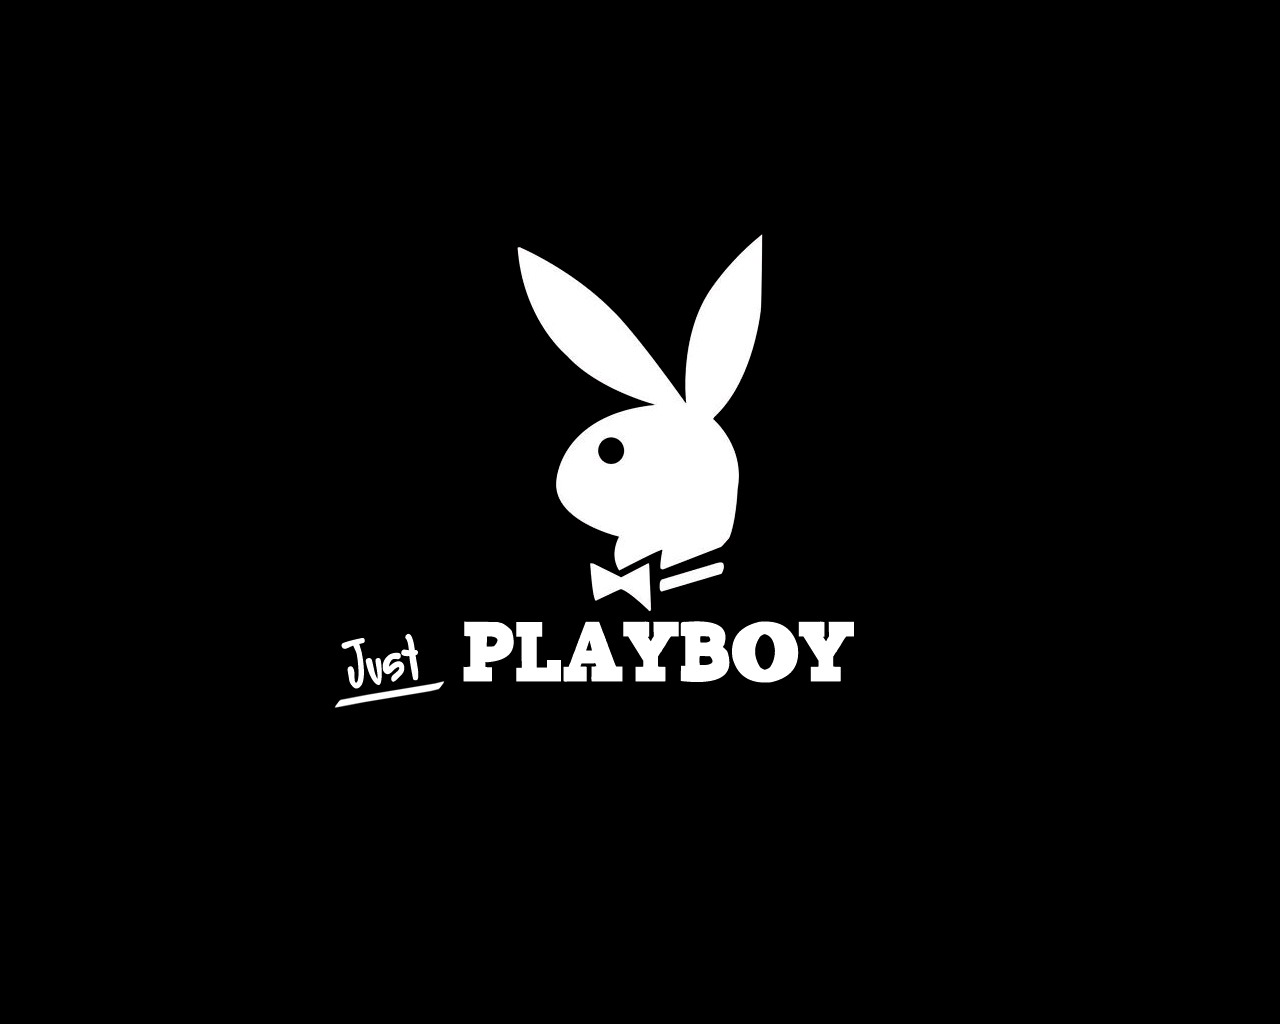 Just Playboy